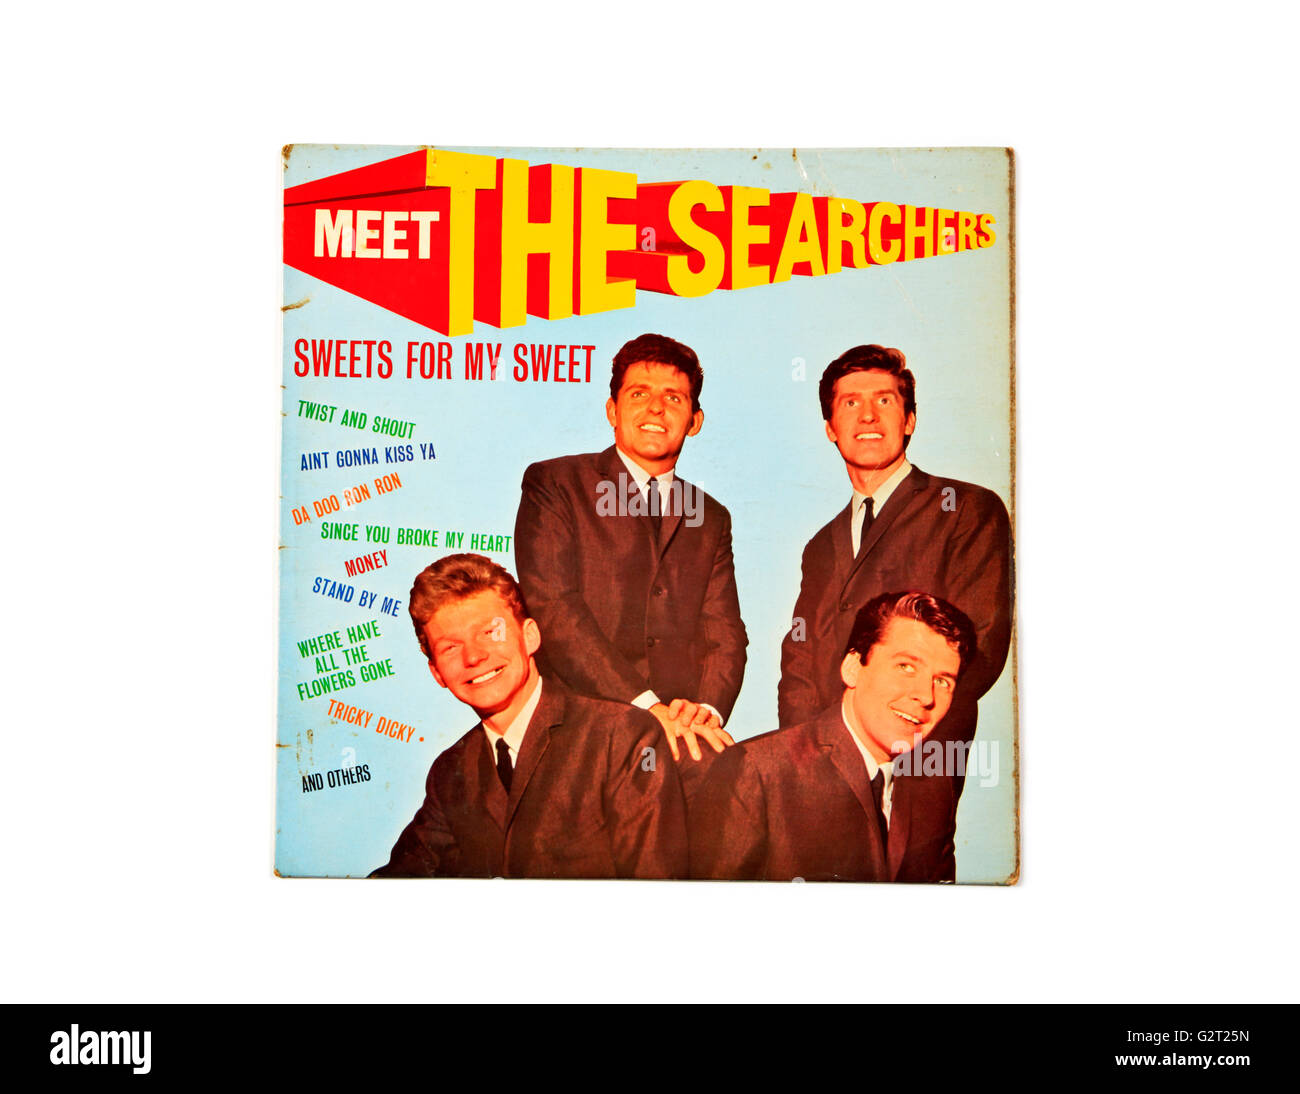 Meet The Searchers long playing record album cover - Stock Image